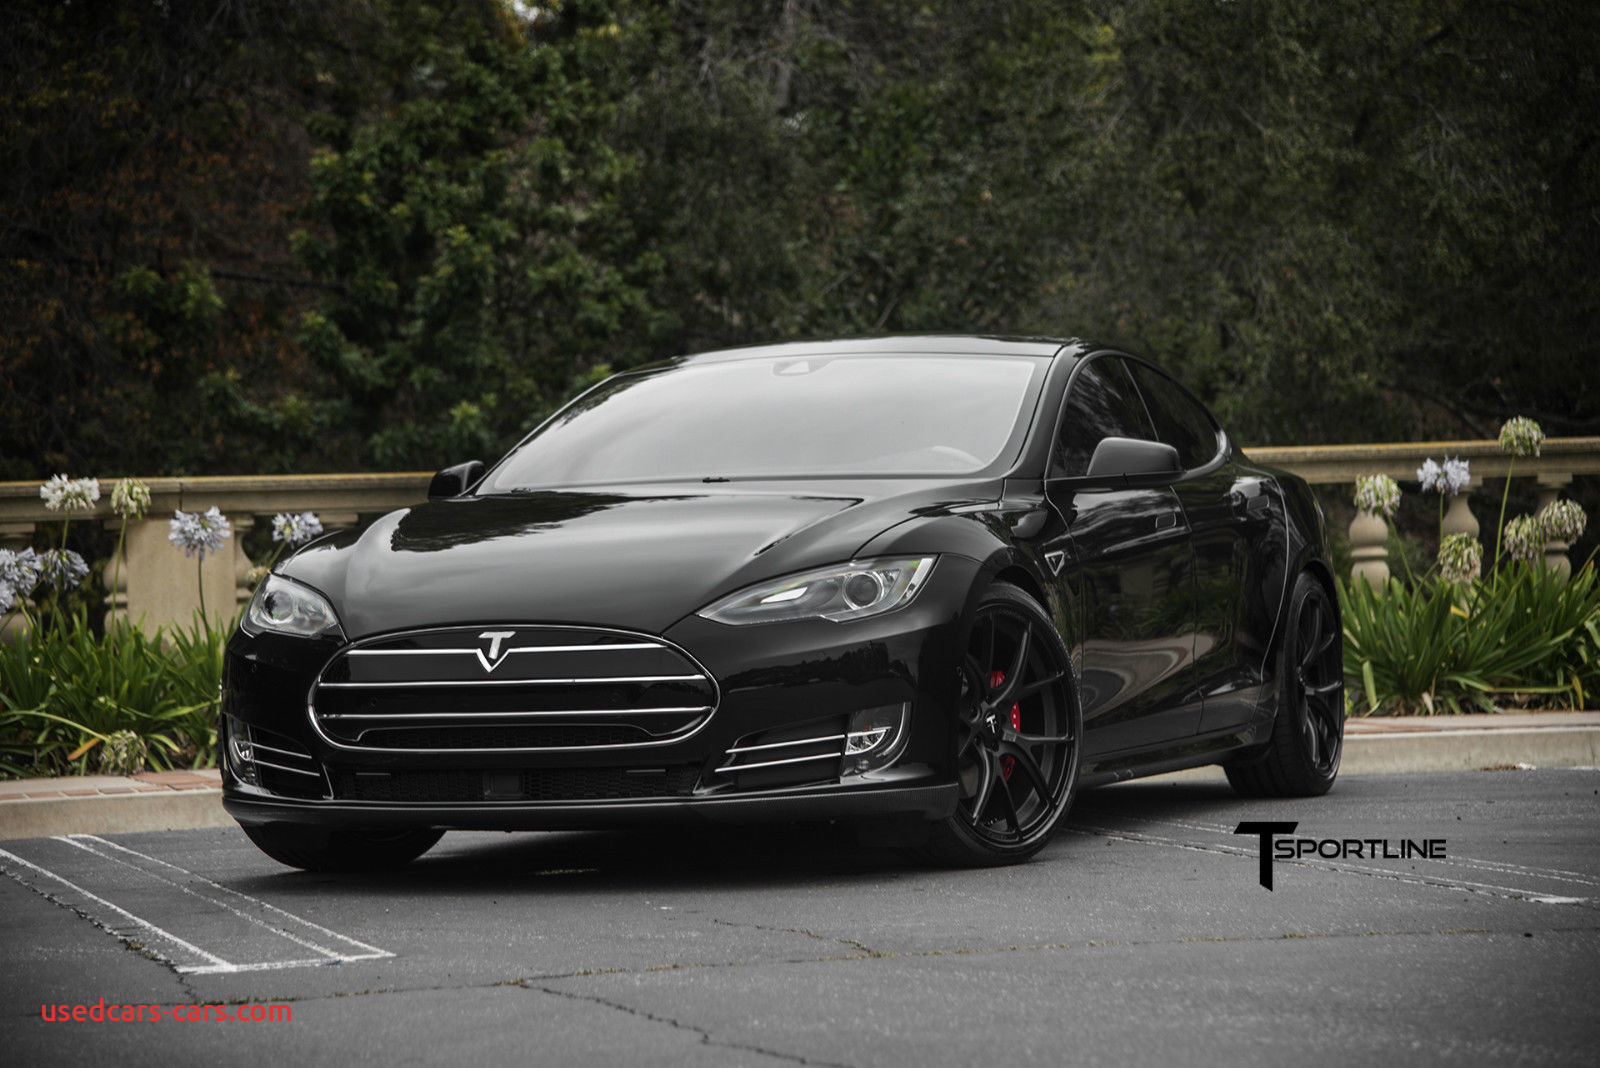 most expensive tesla model s in the world costs 175000 on ebay photo gallery 102100